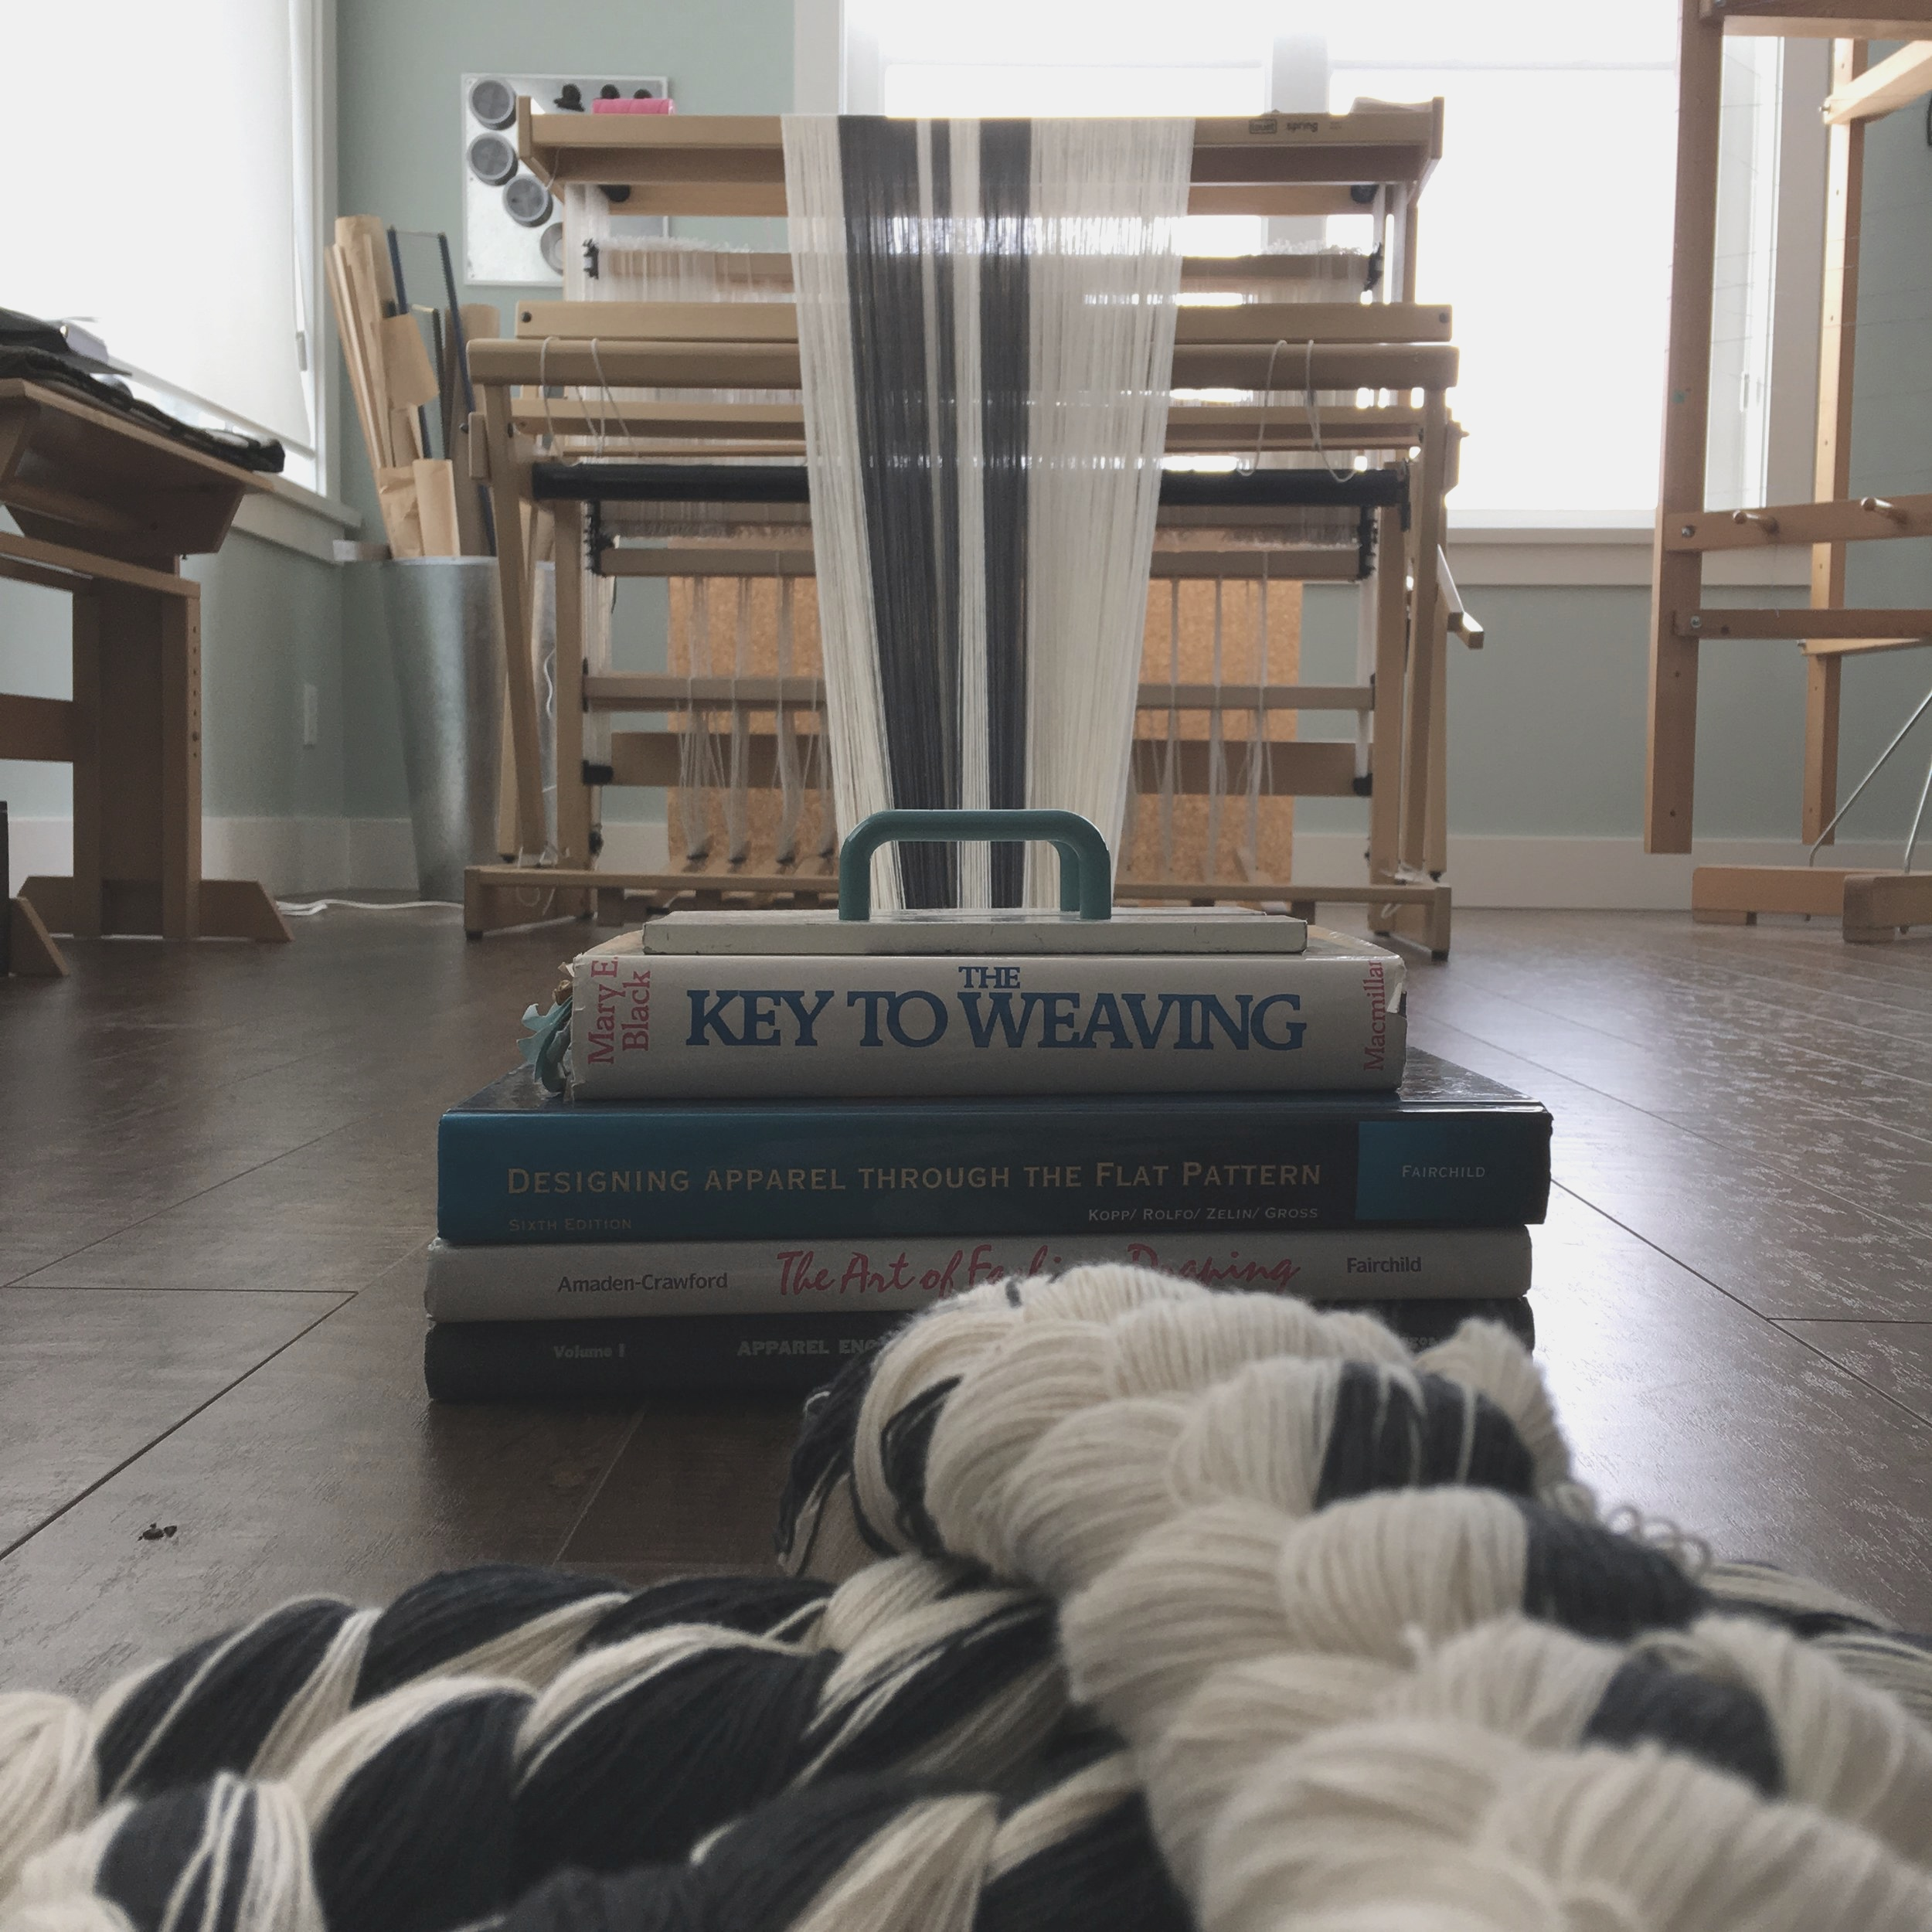 Dressing the Loom…. - The warp is then wound onto the loom where lengths range from 2 yards to 25 yards.